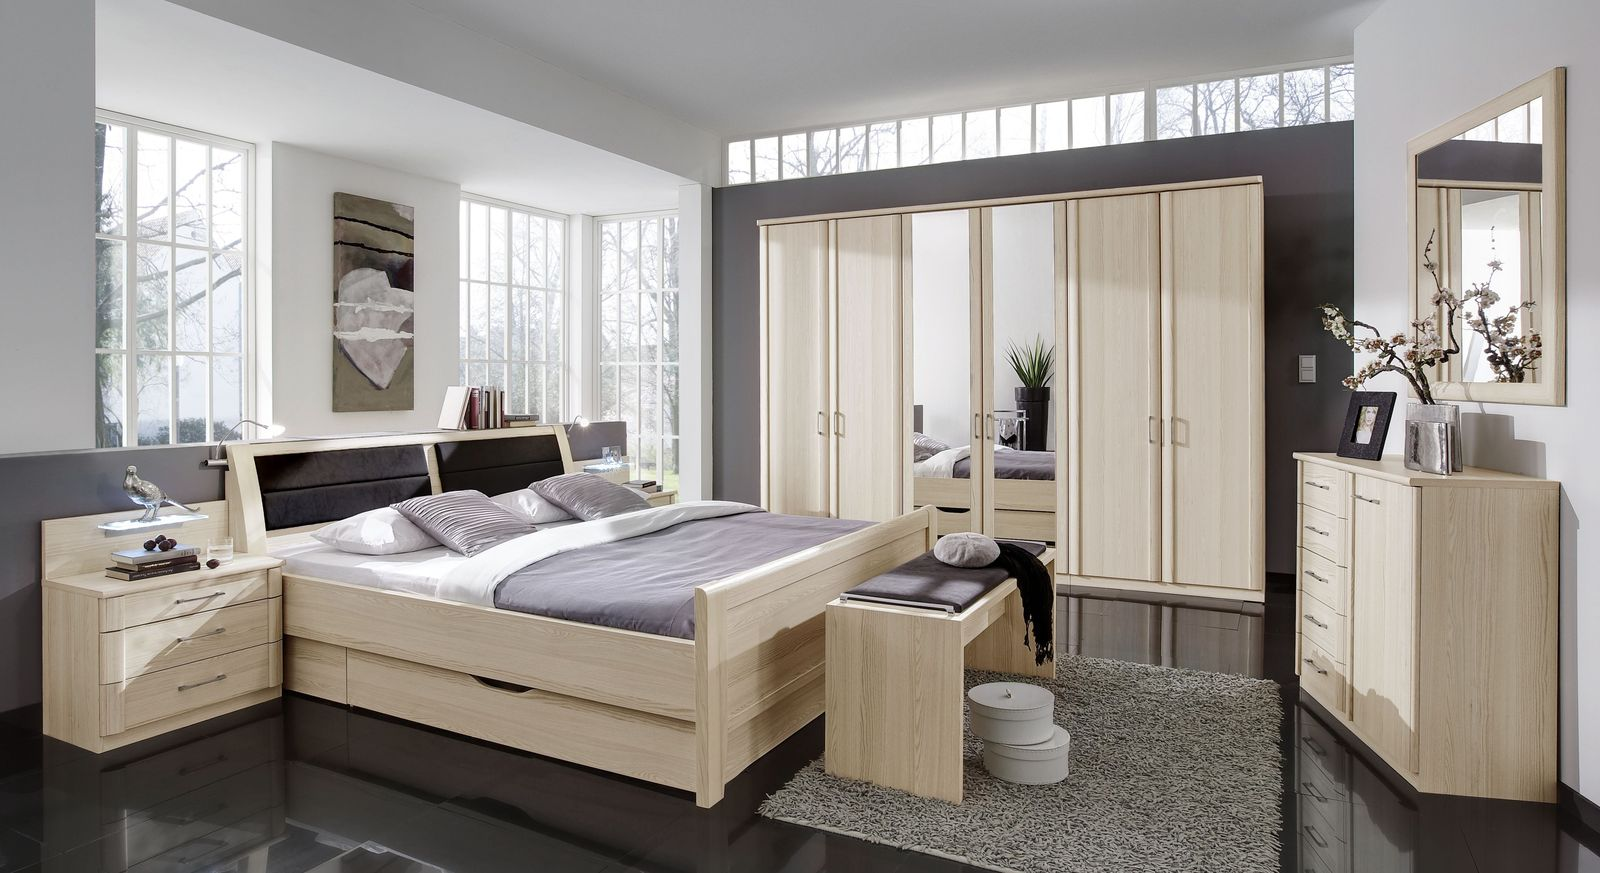 bettbank gepolstert in edel esche dekor und kunstleder rapino. Black Bedroom Furniture Sets. Home Design Ideas